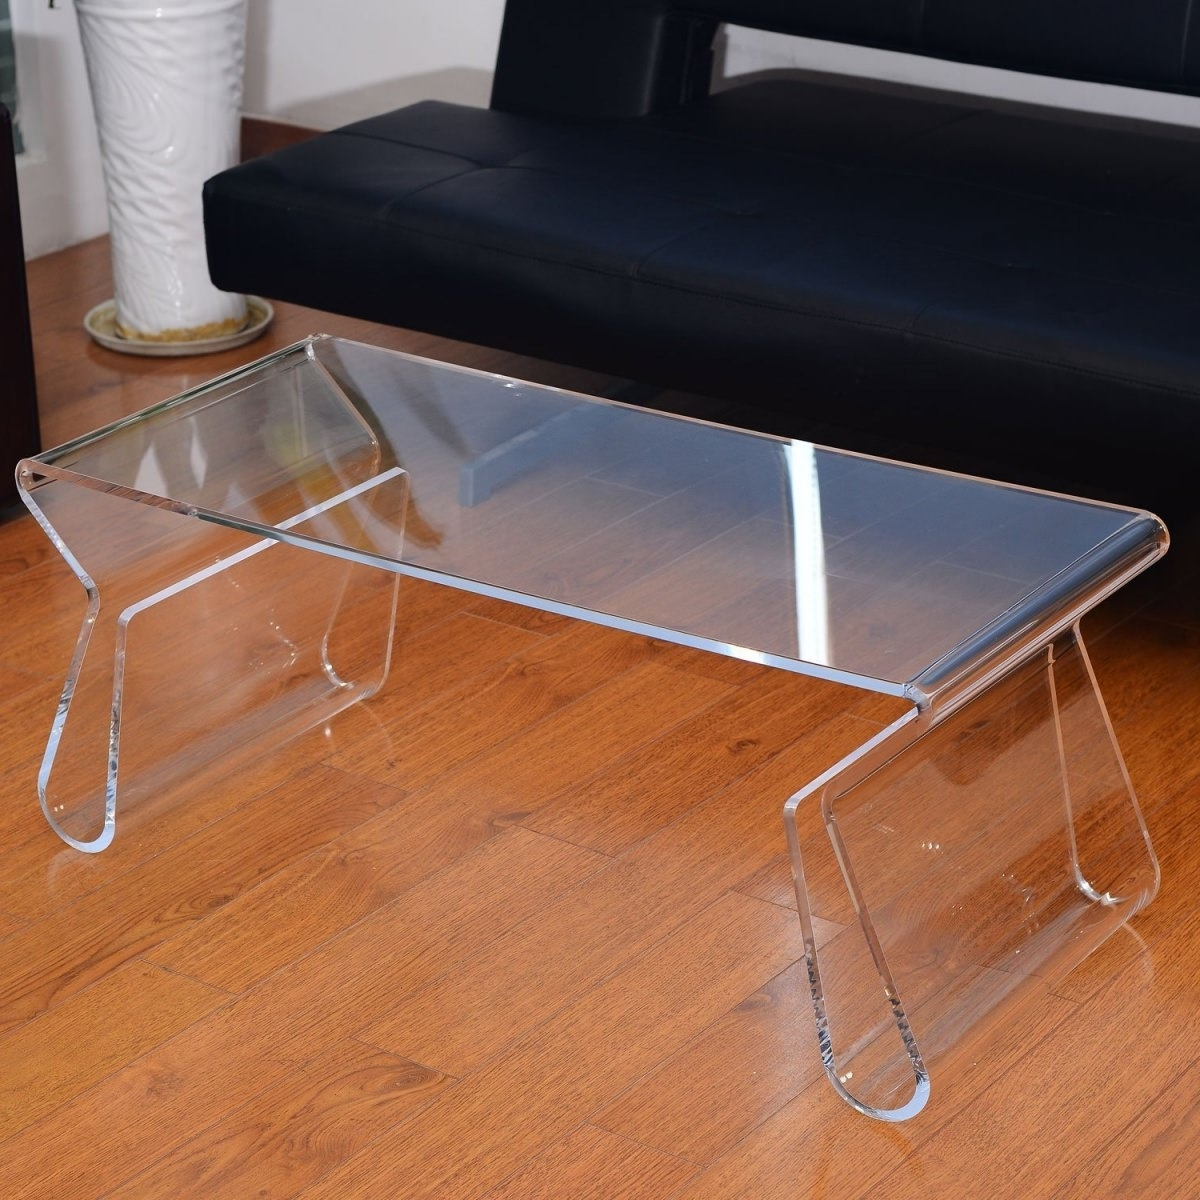 Sushi Ichimura Decor Pertaining To Current Peekaboo Acrylic Tall Coffee Tables (View 16 of 20)